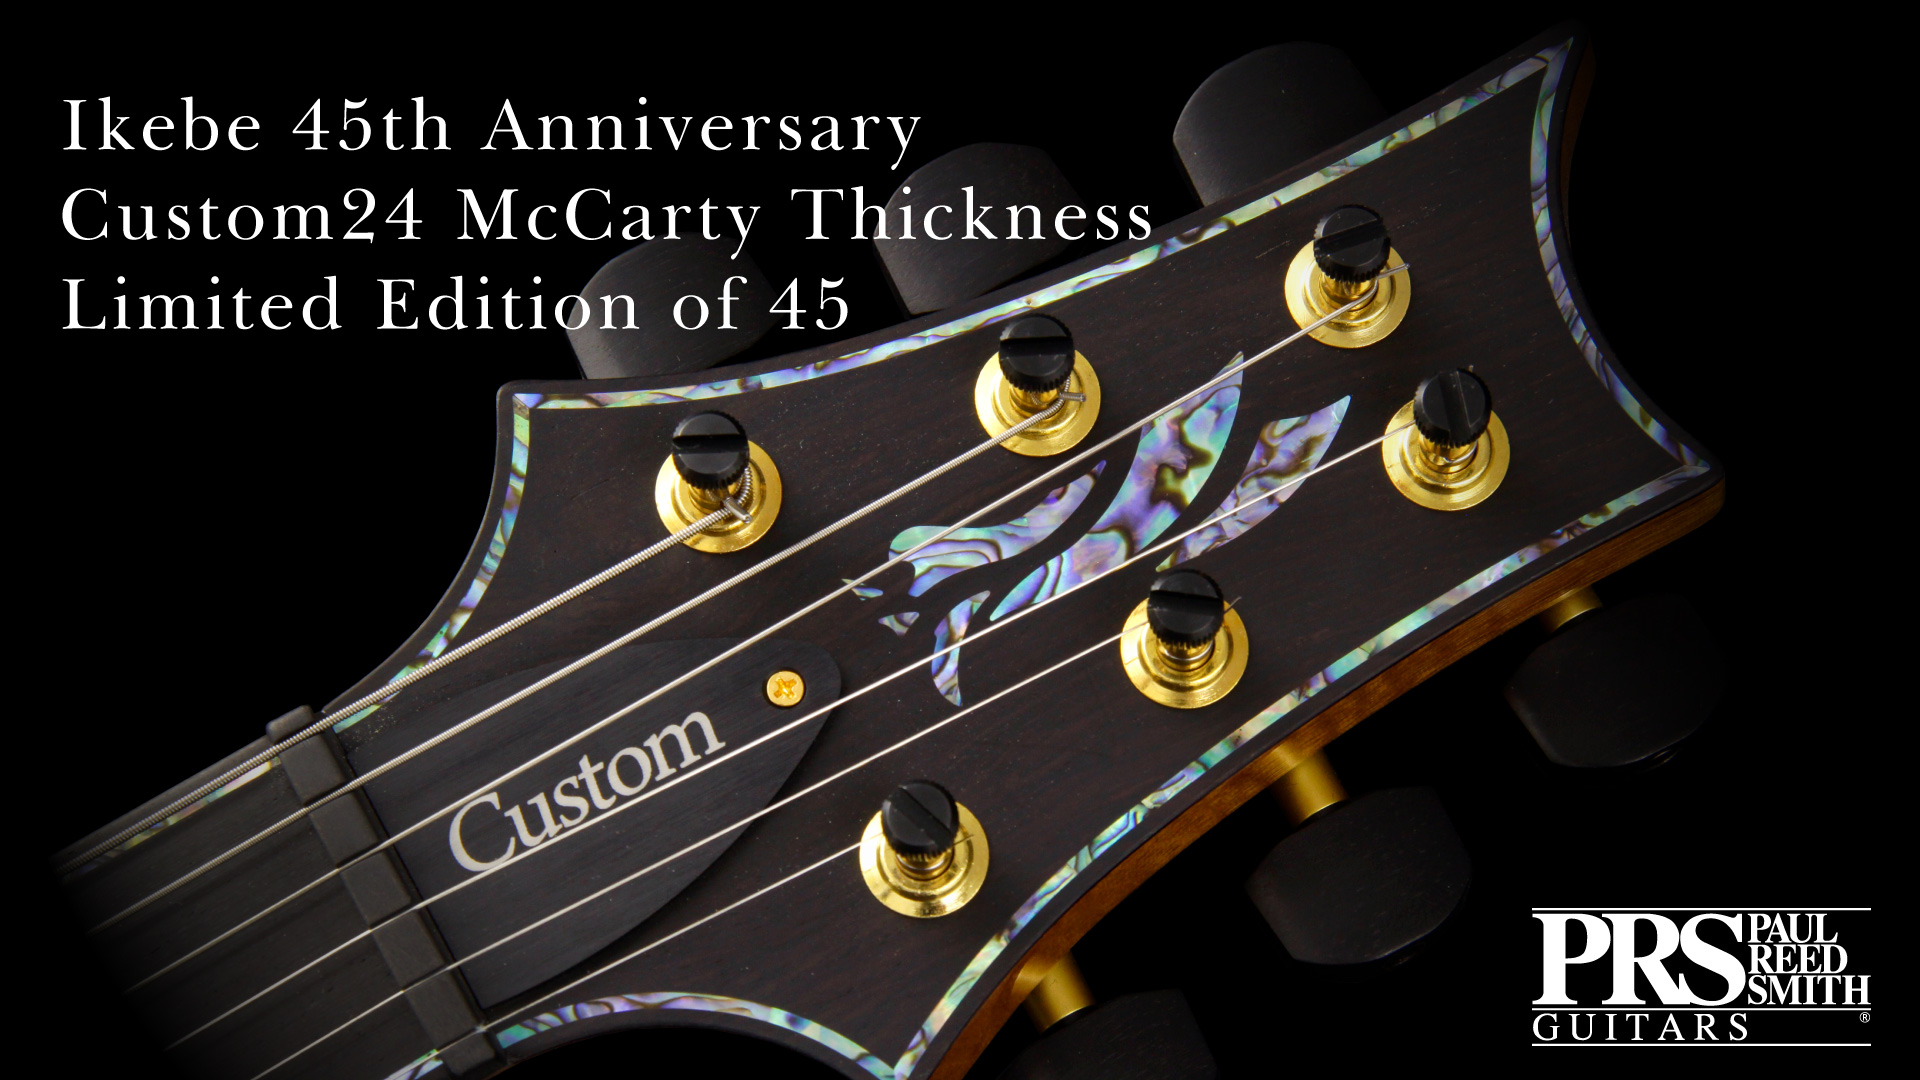 Ikebe 45th Anniversary Custom24 McCarty Thickness Limited Edition of 45